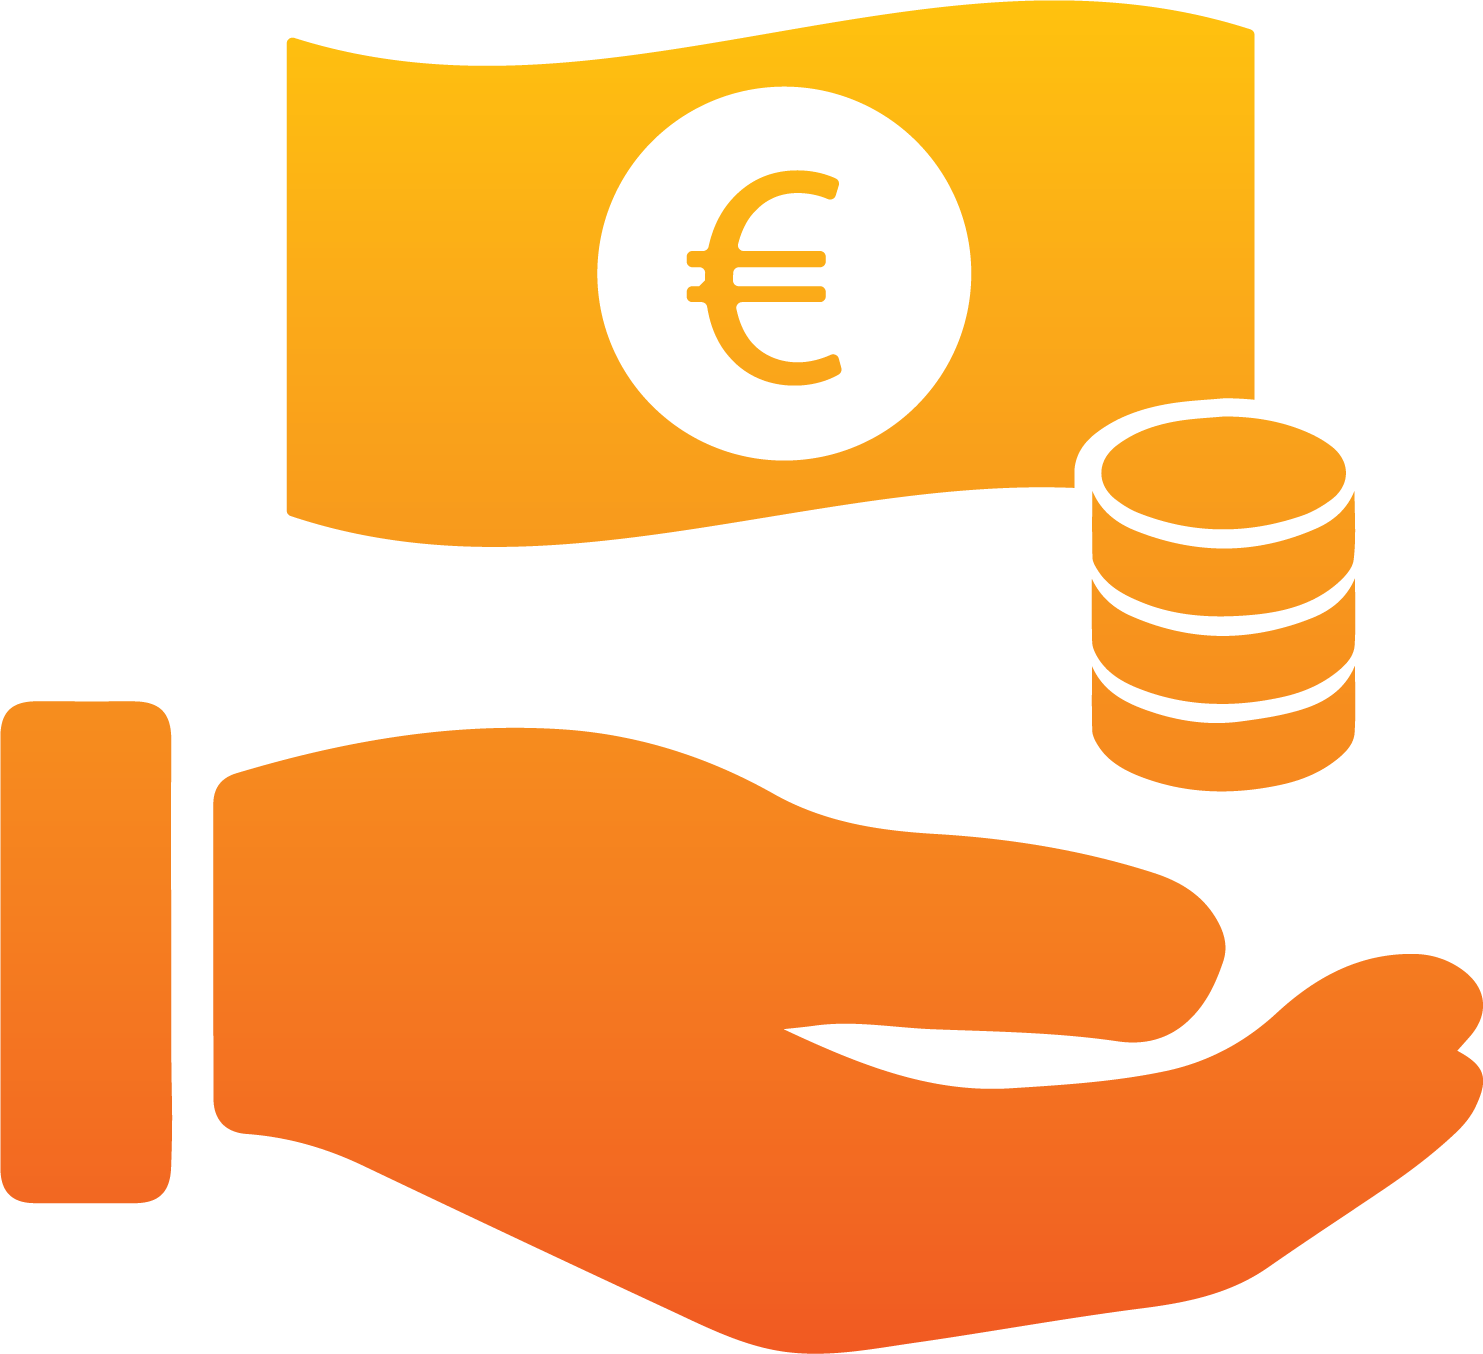 Save time and make money with PartnerSec cloud based access control